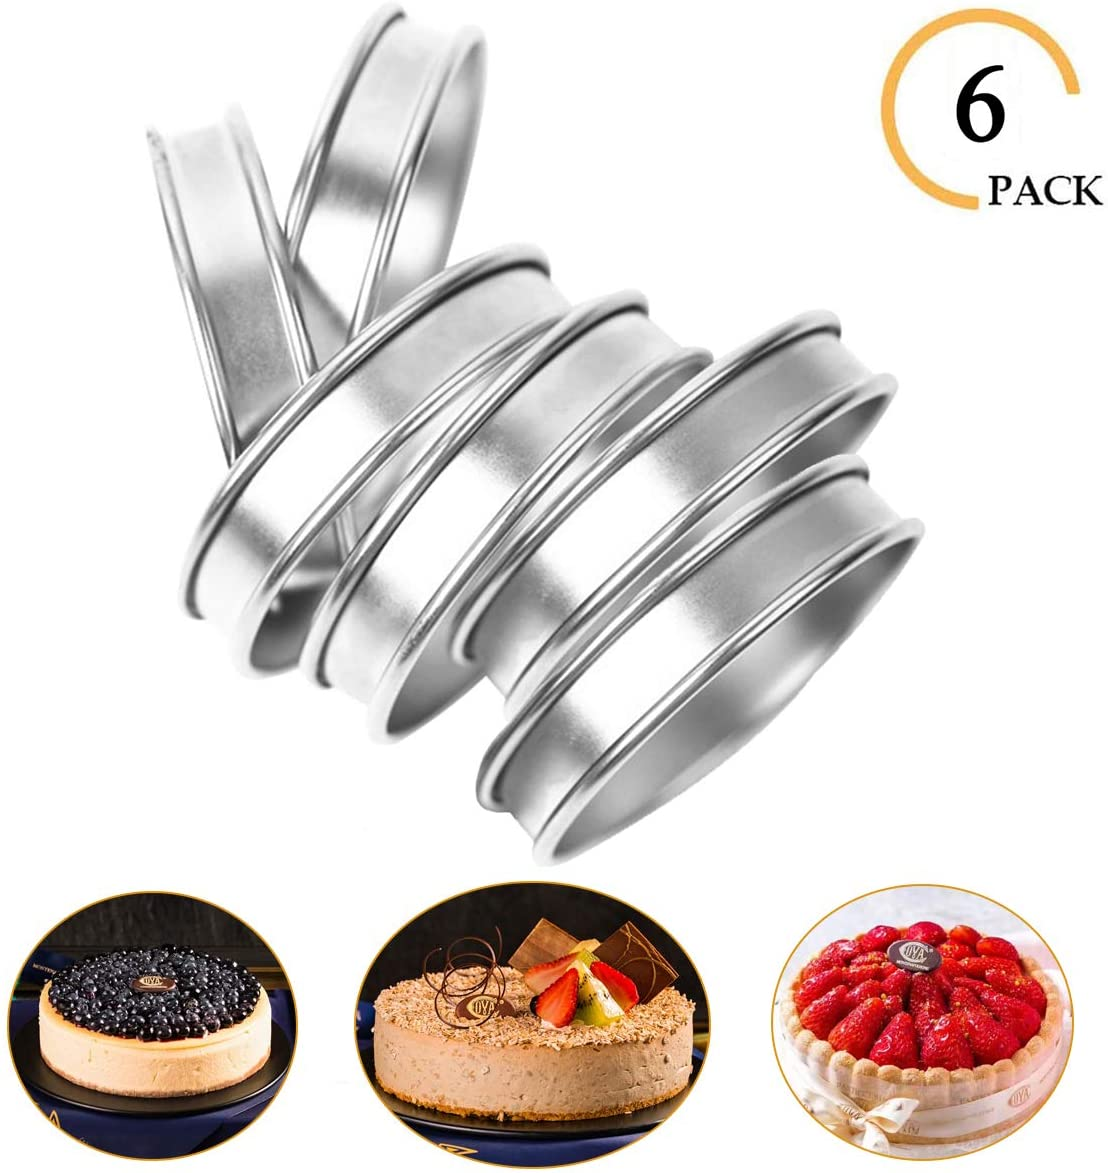 6 Pieces Muffin Tart Rings, Double Rolled Crumpet Bread Rings Professional Stainless Steel Cake Muffin Mold Rings Metal Round Ring Mold for Home Food Making Tool, Cooking (3.15 Inch)